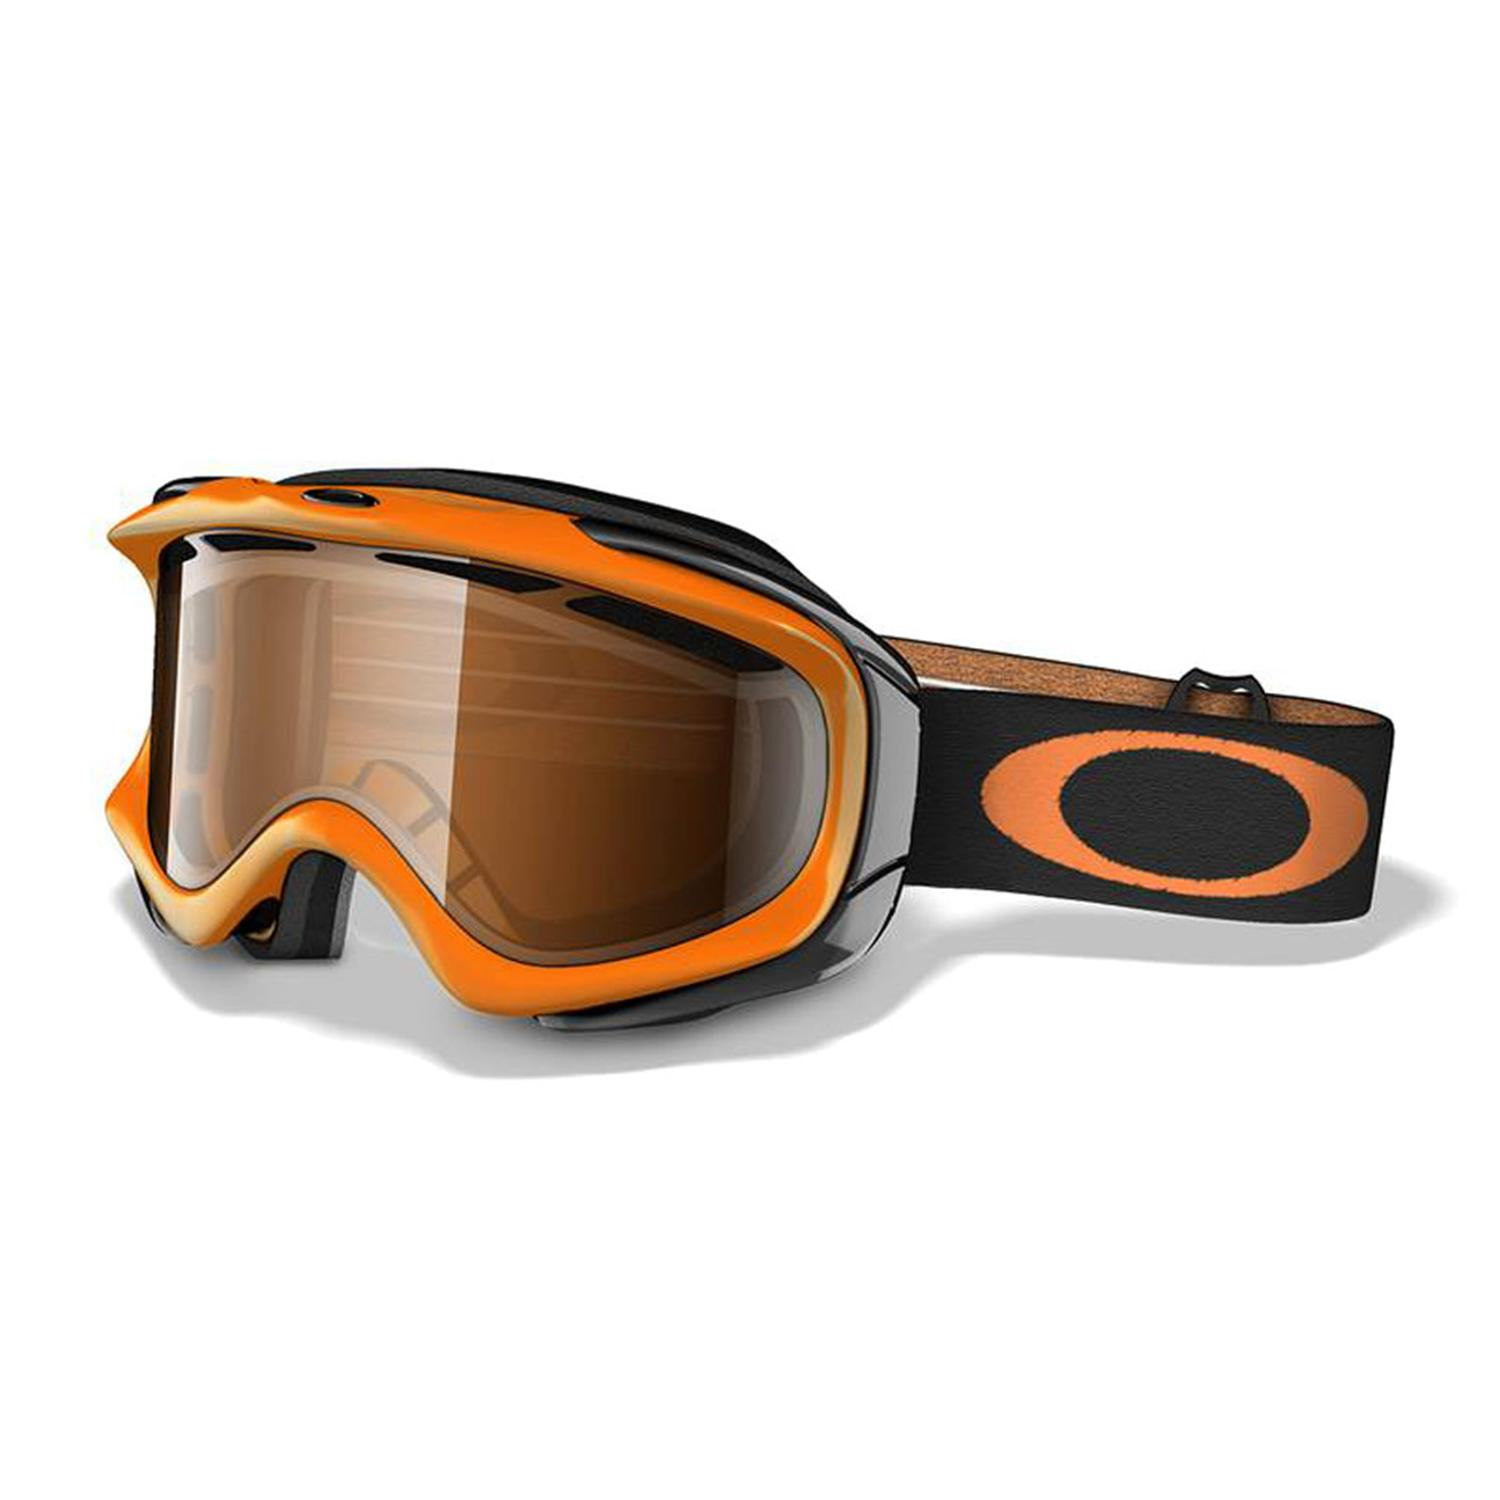 916515a038 Oakley Polarized Snow Goggles Review « Heritage Malta